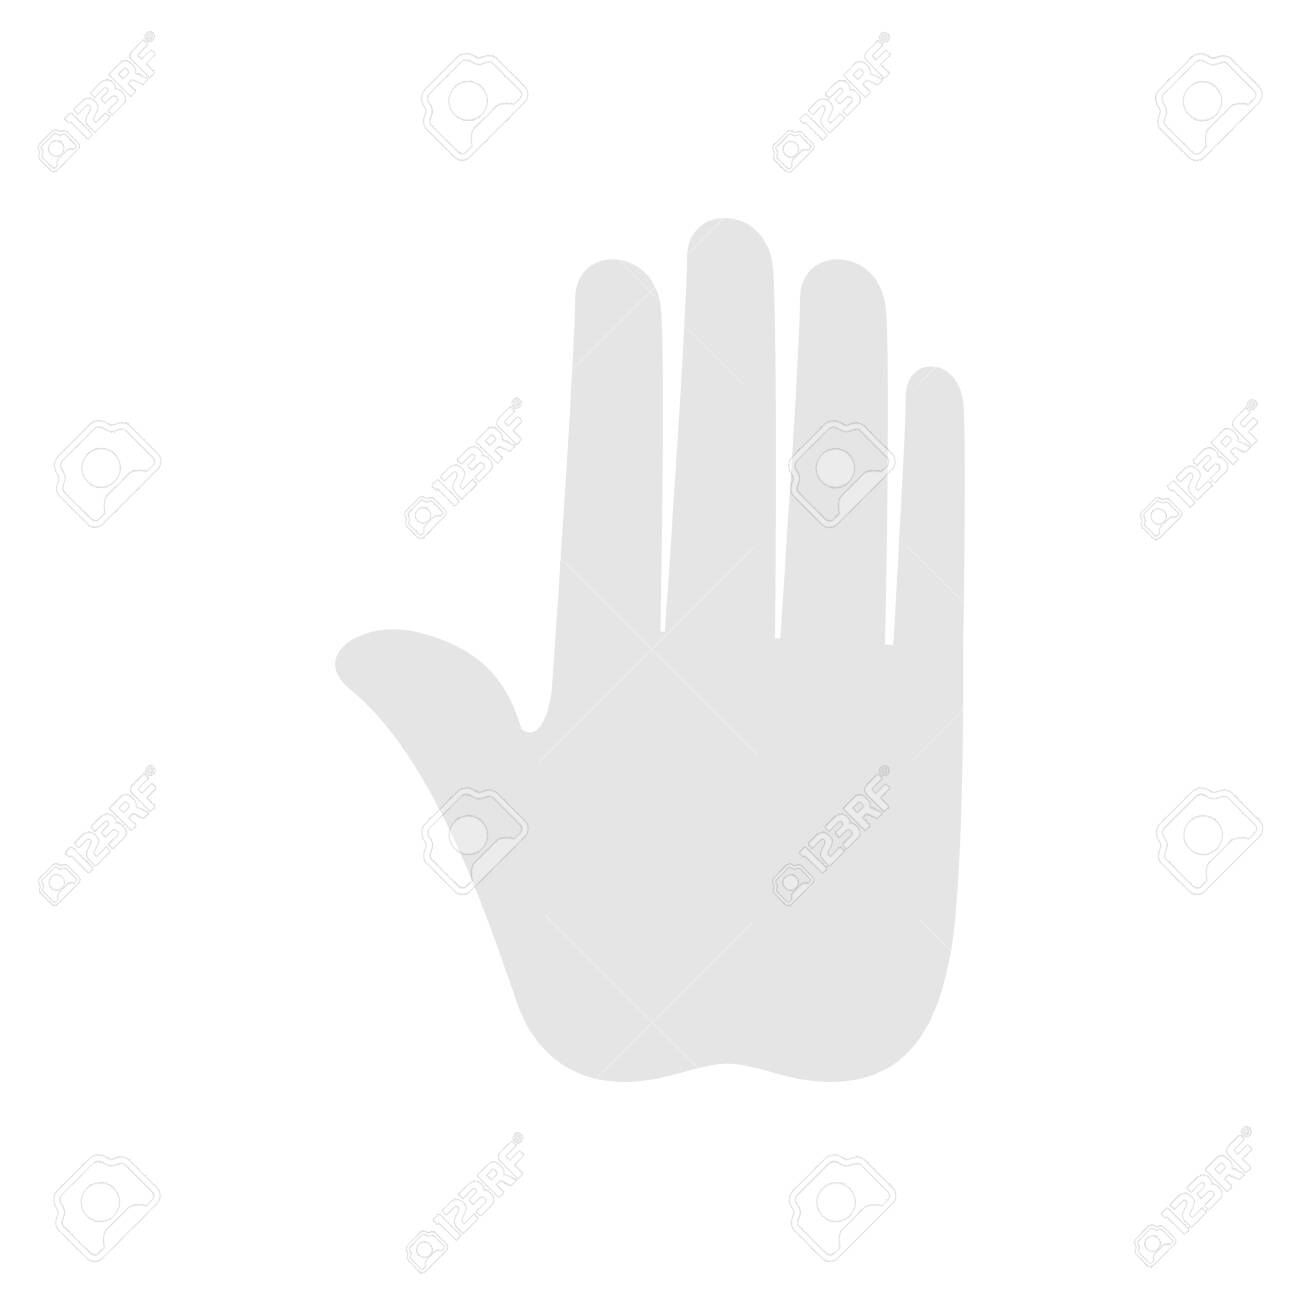 silhouette of hand stop isolated icon vector illustration design - 134035149